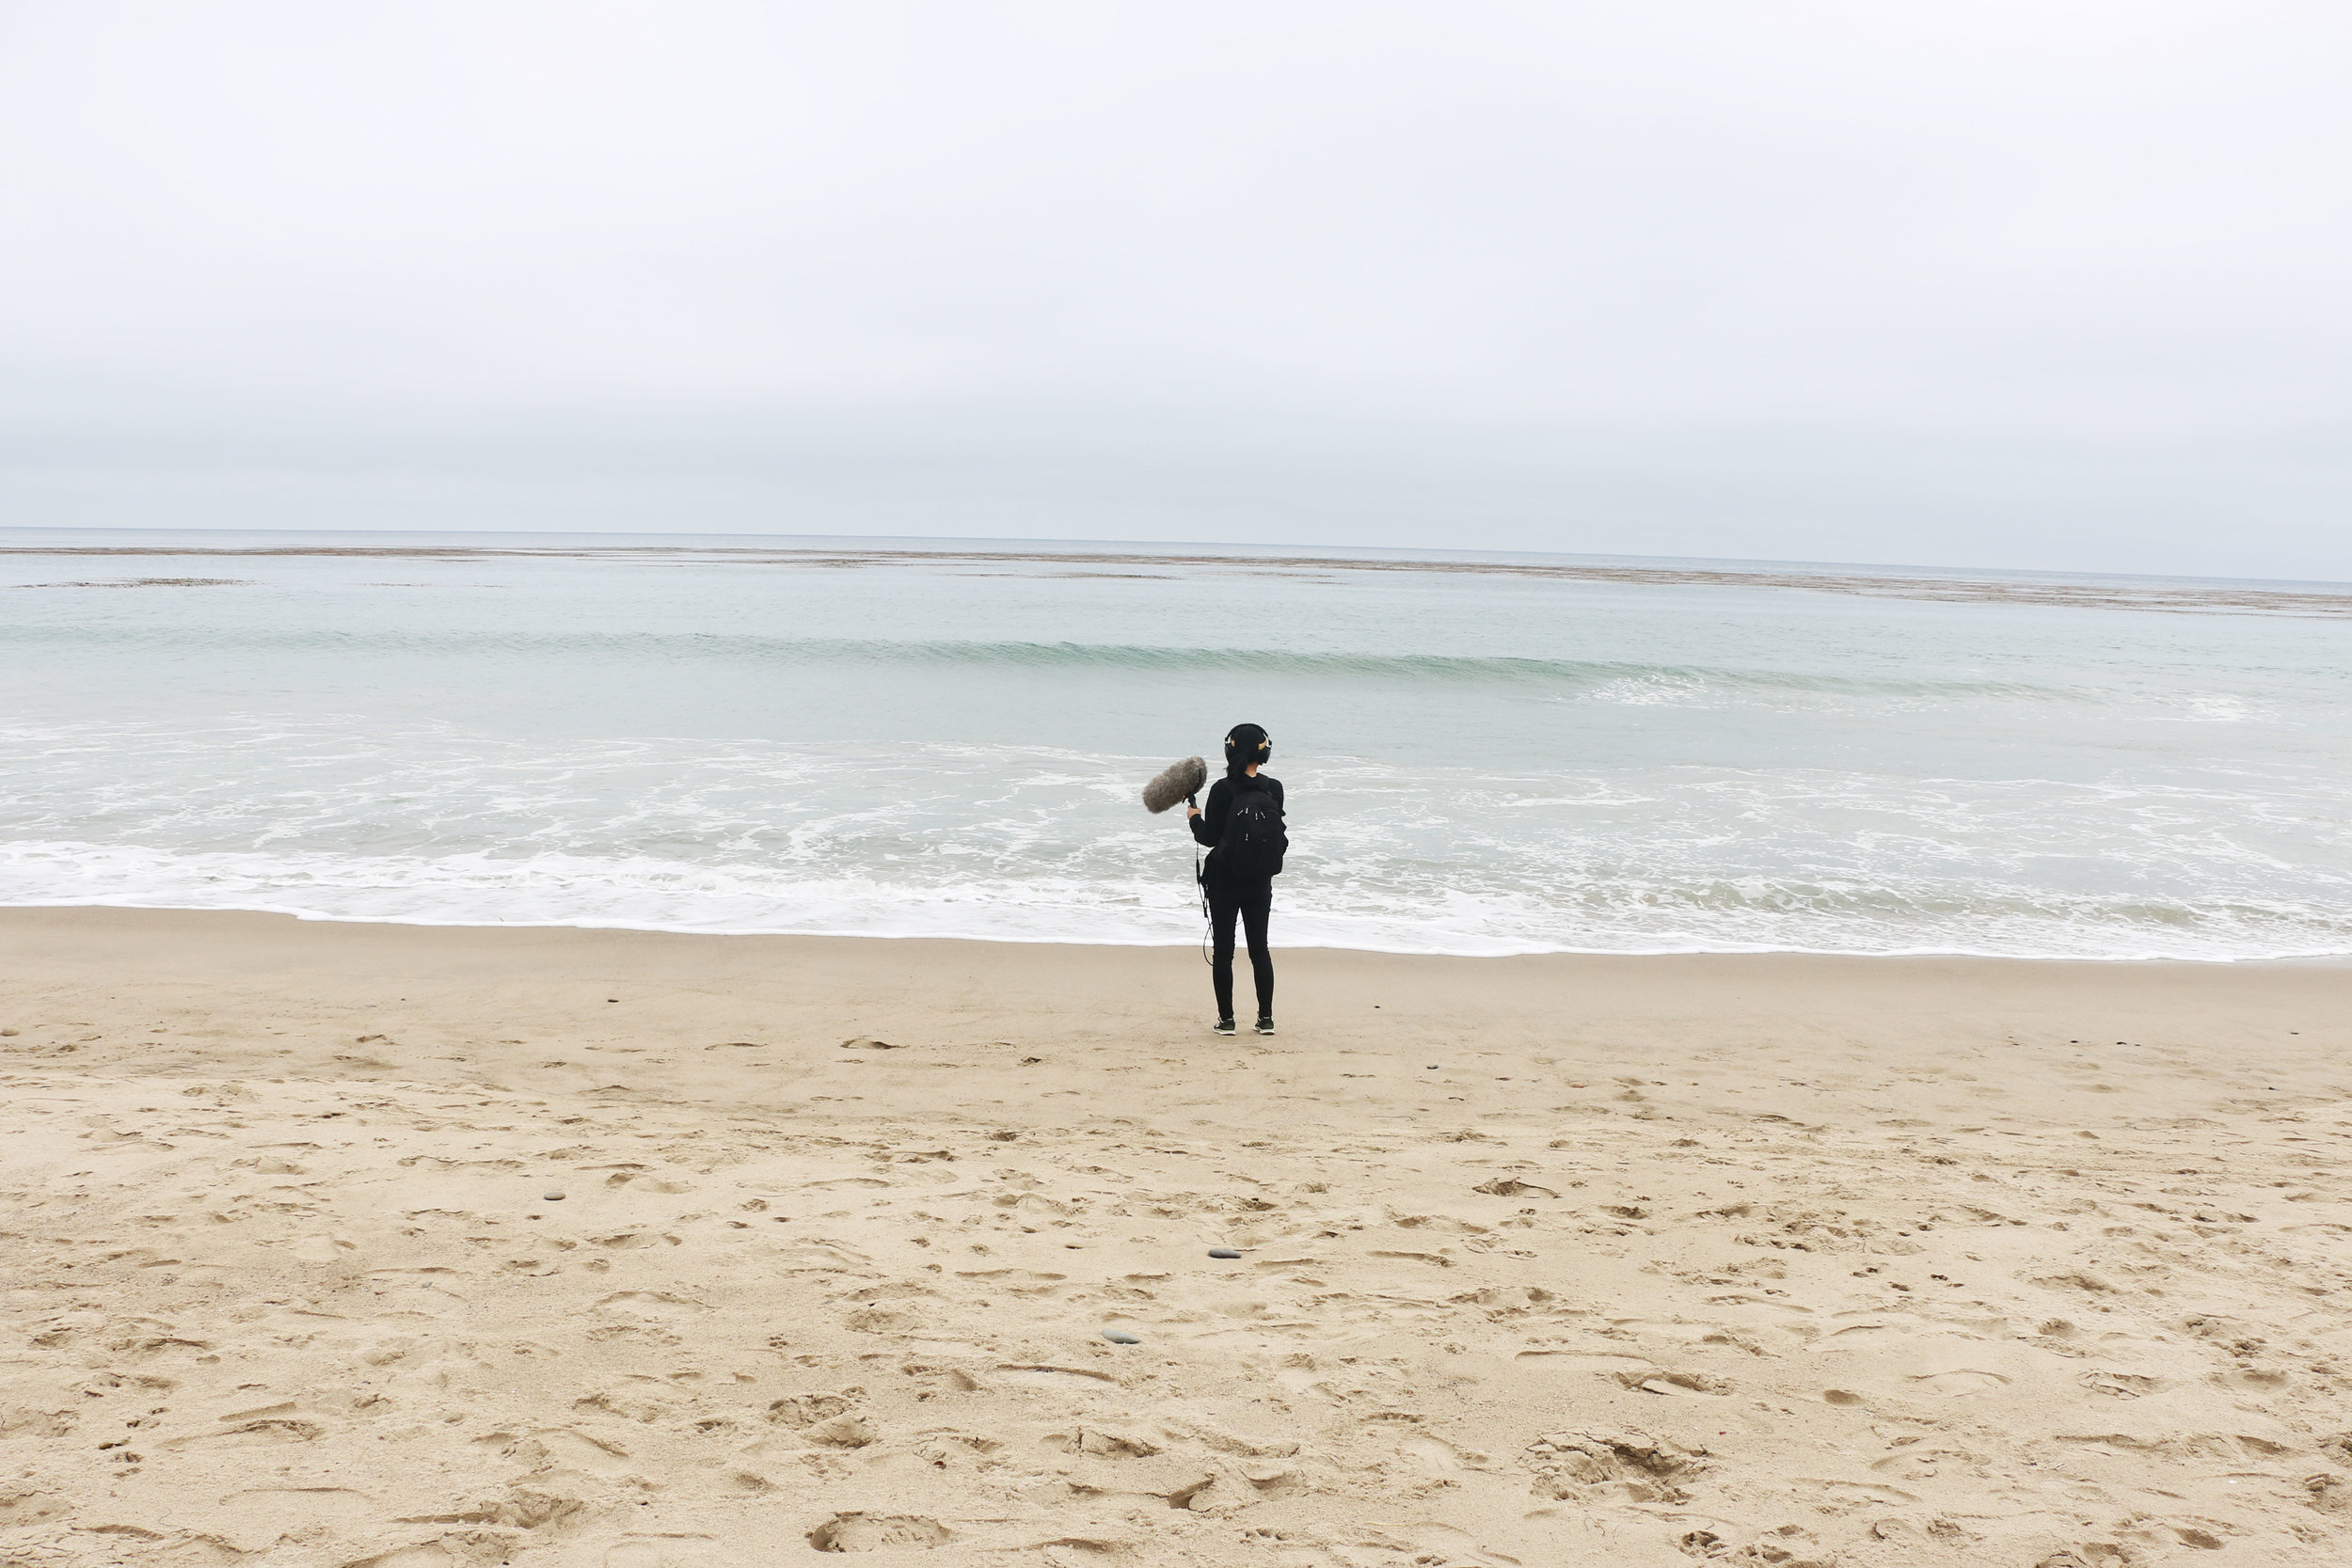 Host/producer Paola Mardo records sounds on a beach in Malibu, California. Photo by Patrick Epino.